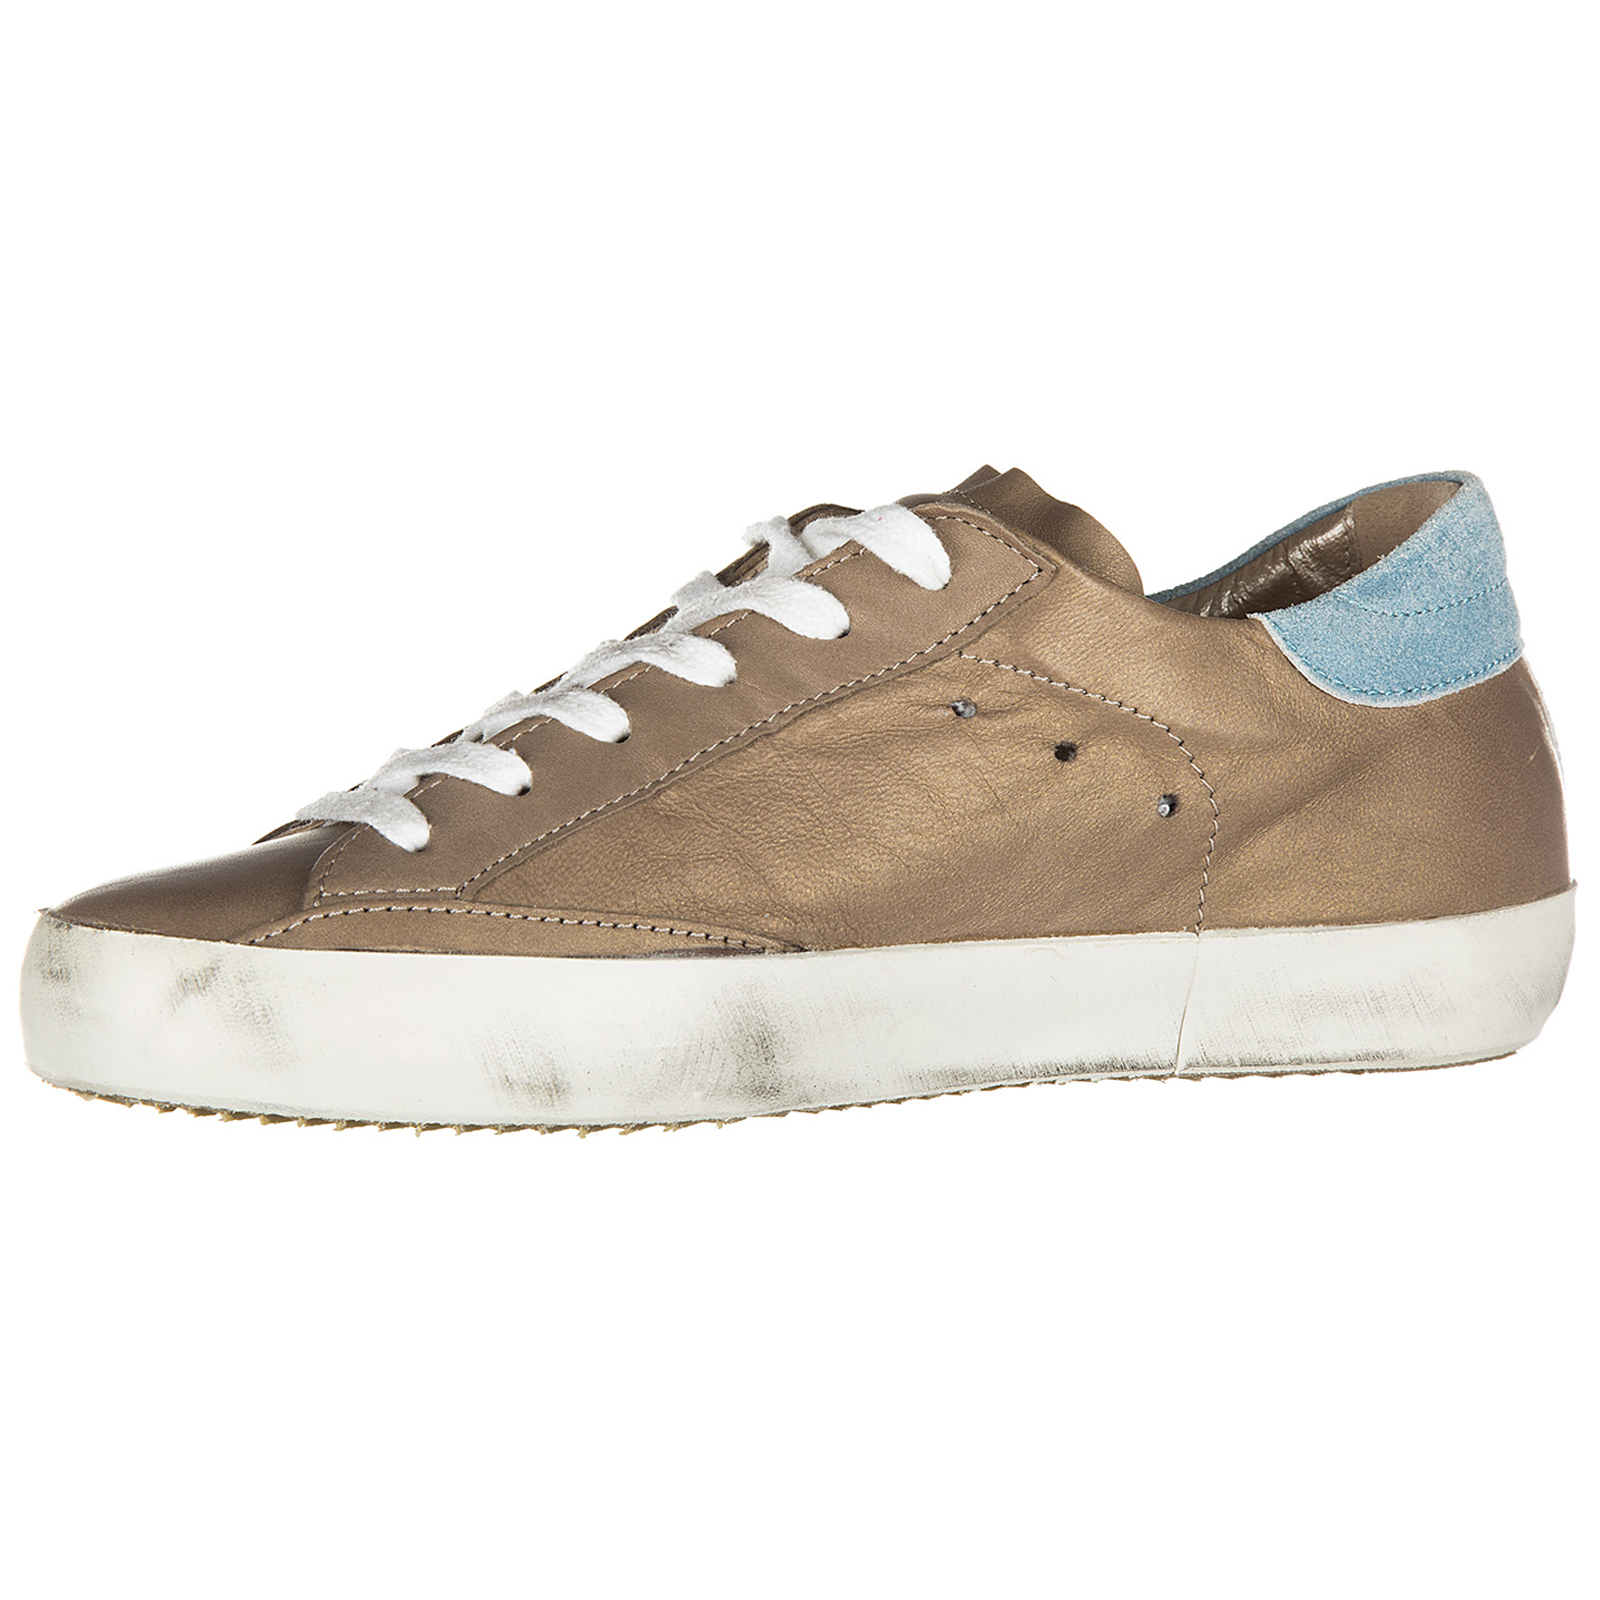 Women's shoes leather trainers sneakers classic metallic